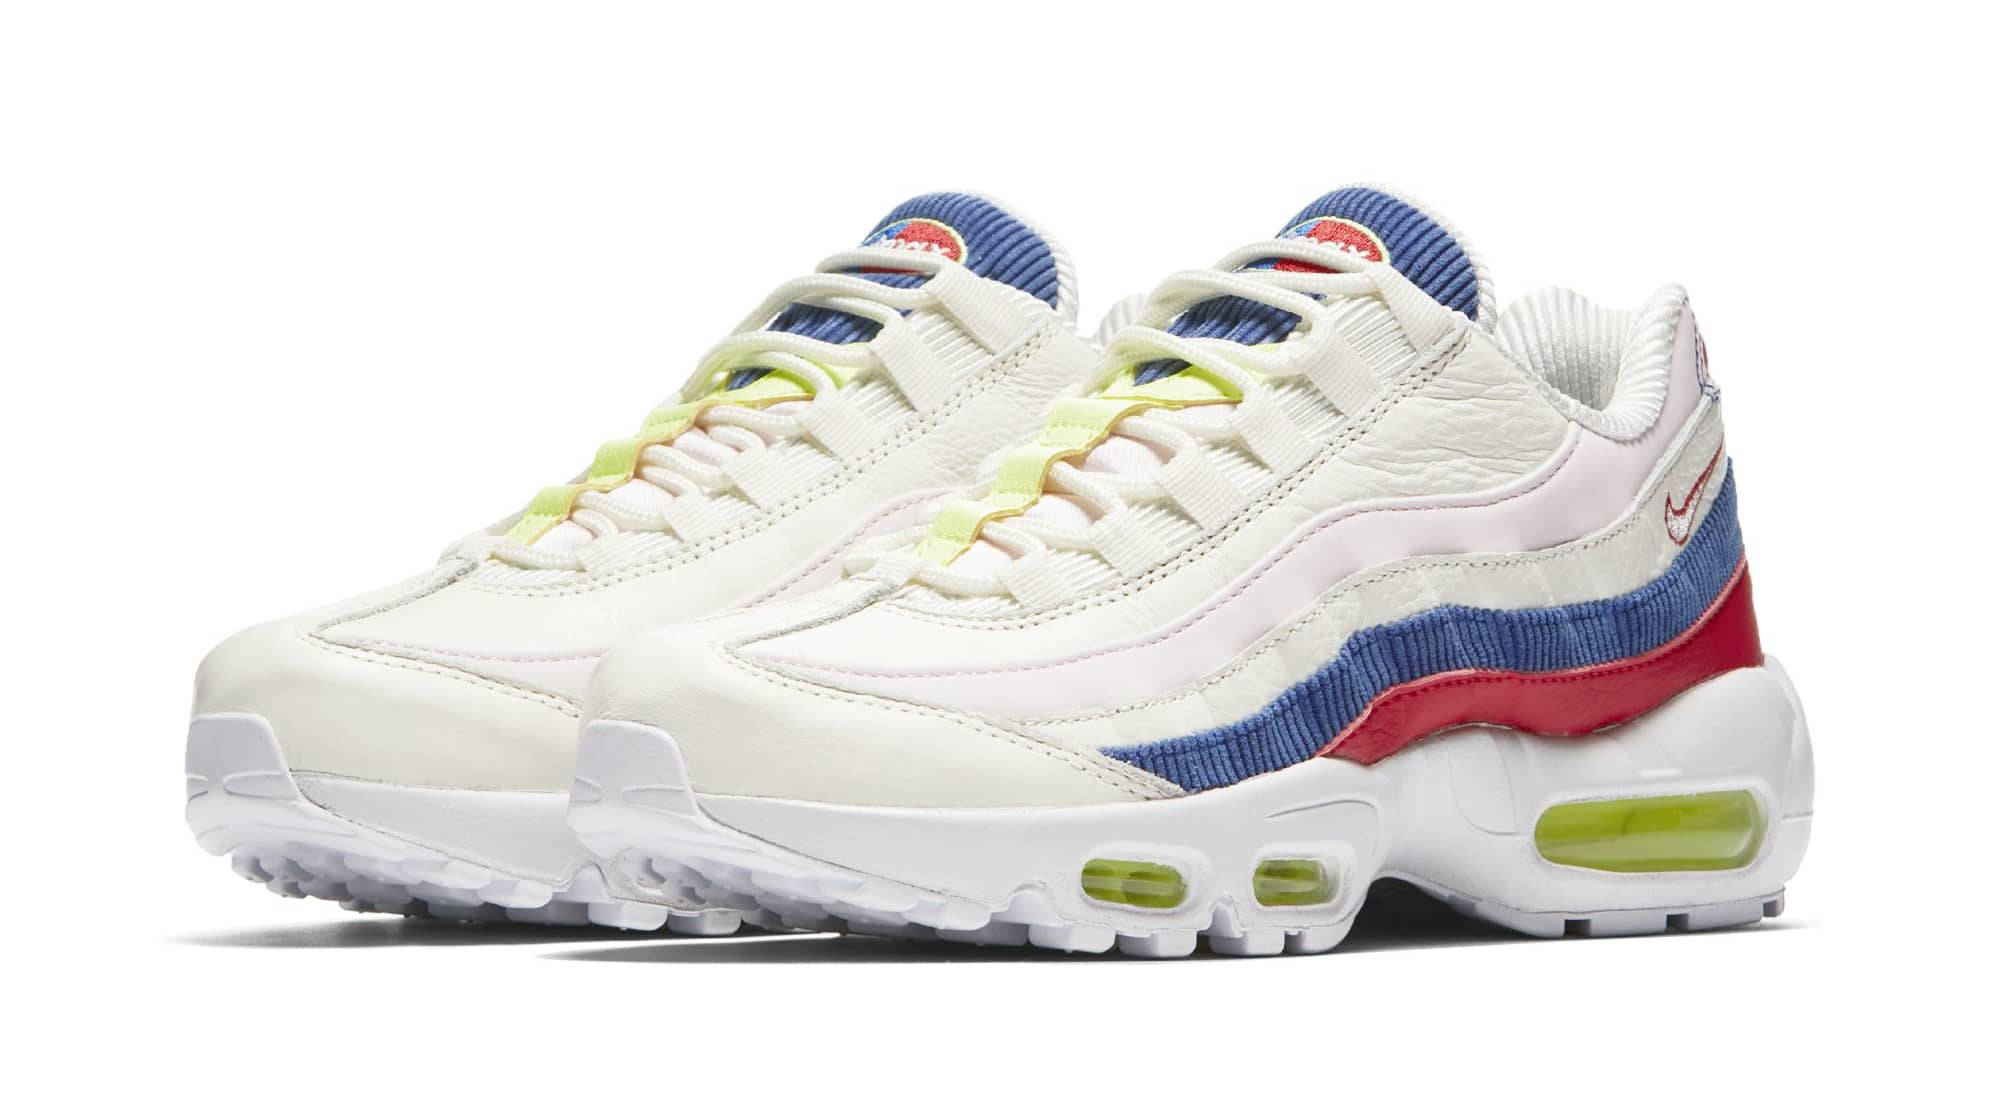 Panache Pack Air Max 95 releasing in May 2018.